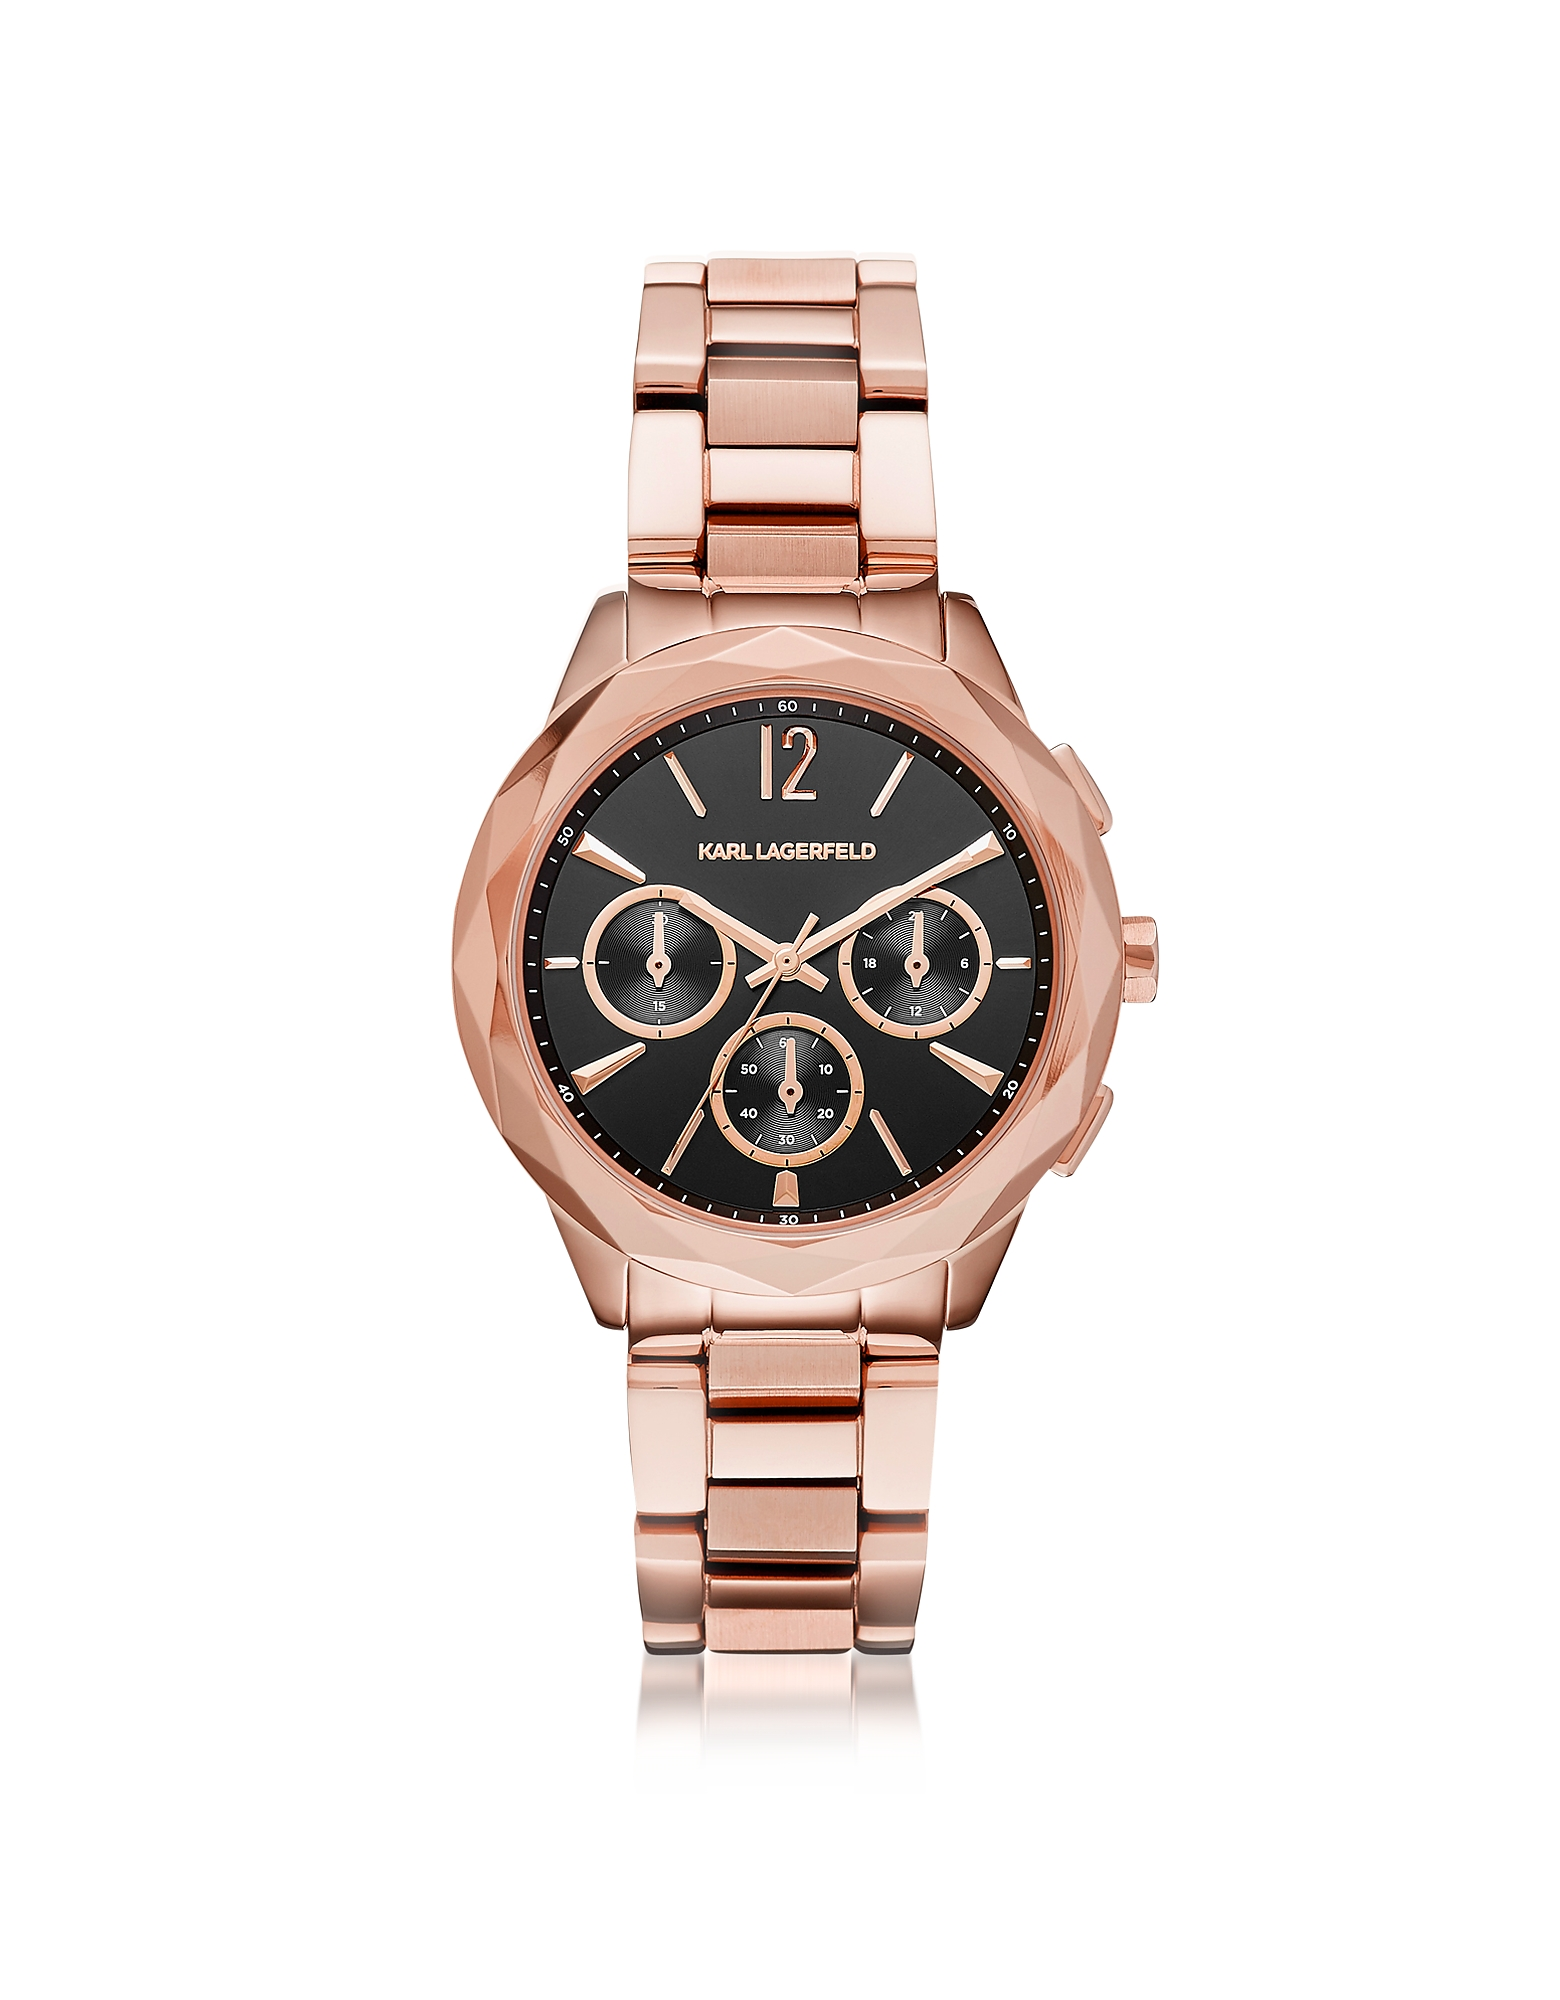 Karl Lagerfeld Women's Watches, Optik Rose Gold PVD Stainless Steel Women's Chronograph Watch